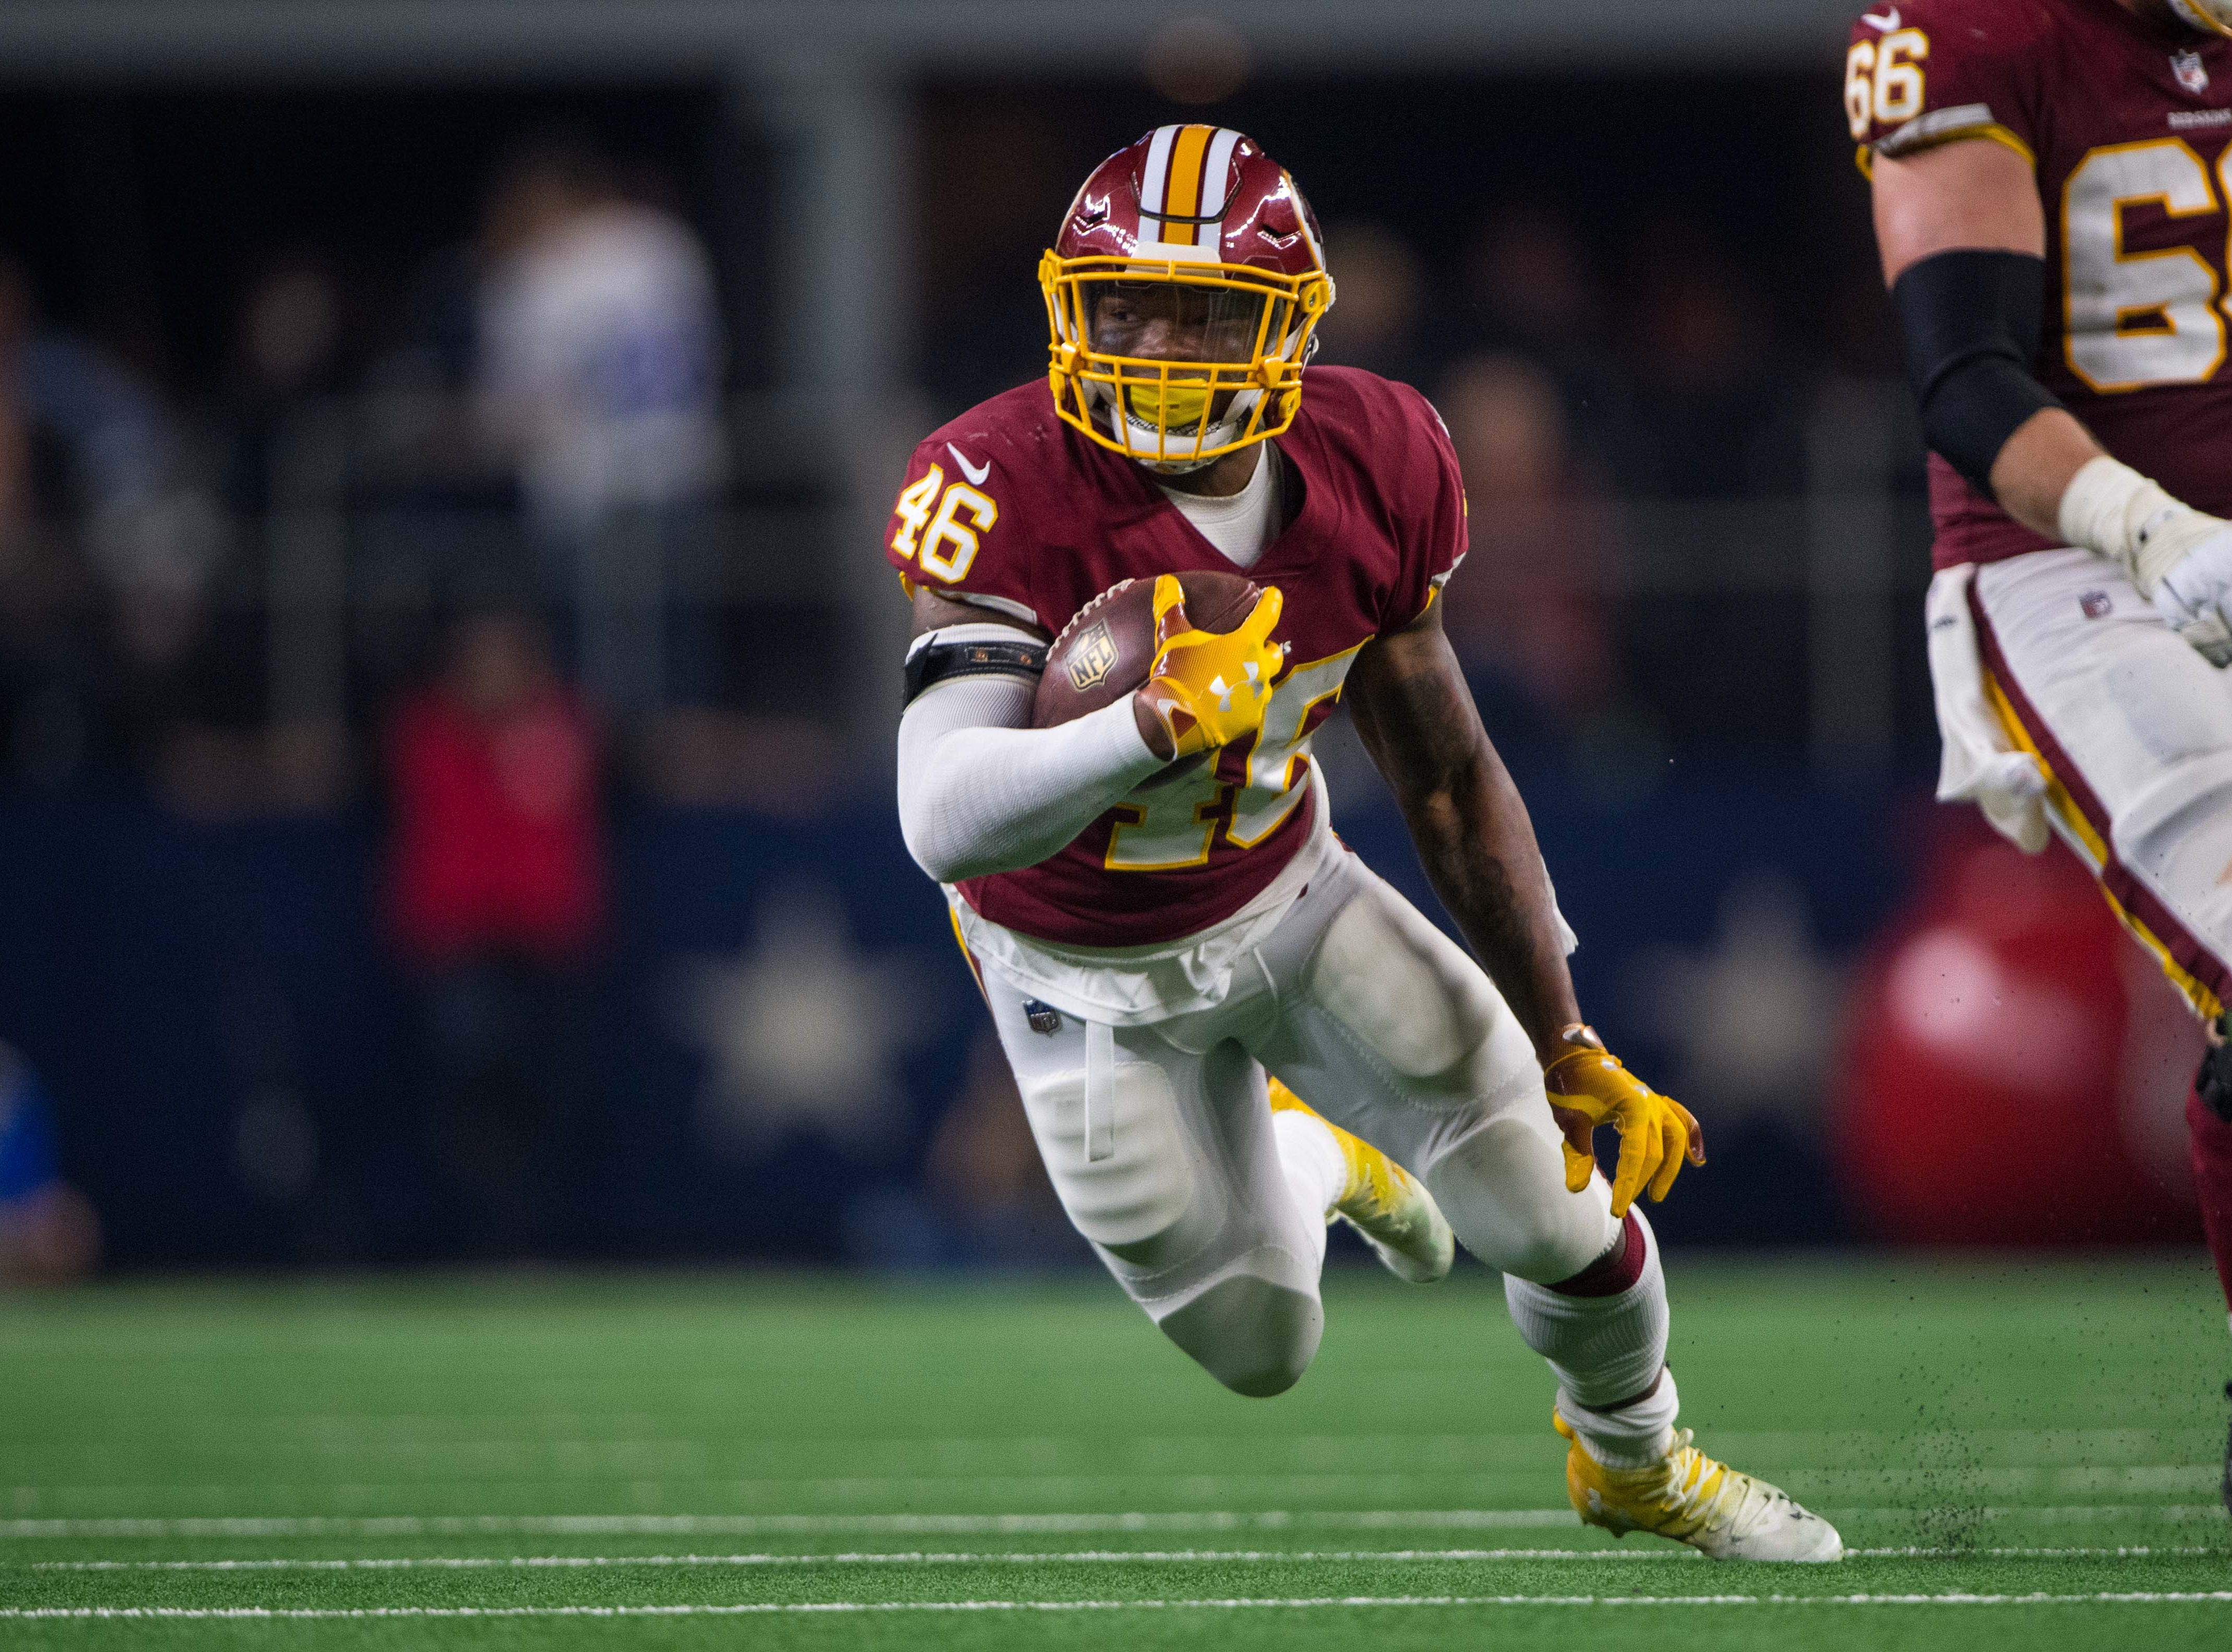 Washington Redskins running back Kapri Bibbs (46) has 20 carries for 101 yards and three touchdowns and 13 catches for 102 yards and a touchdown this season